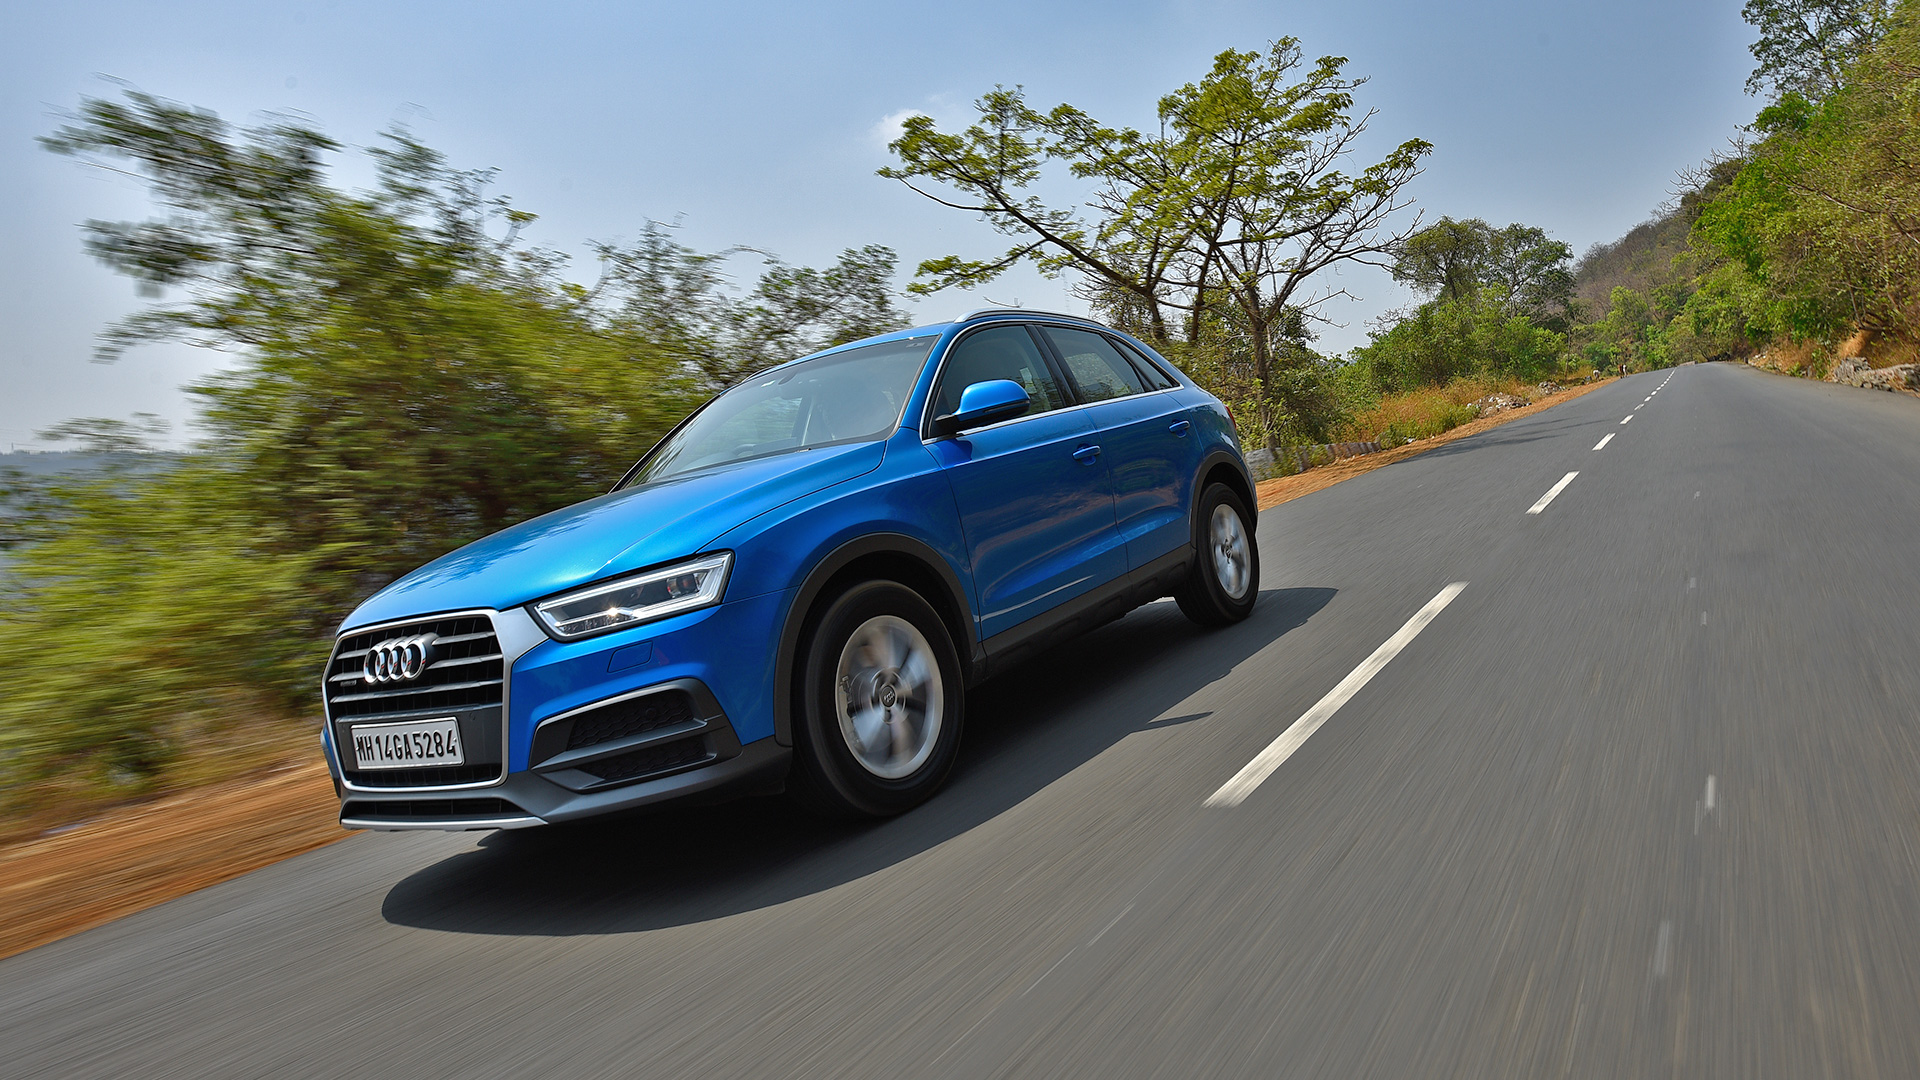 audi q3 2017 price mileage reviews specification gallery overdrive. Black Bedroom Furniture Sets. Home Design Ideas